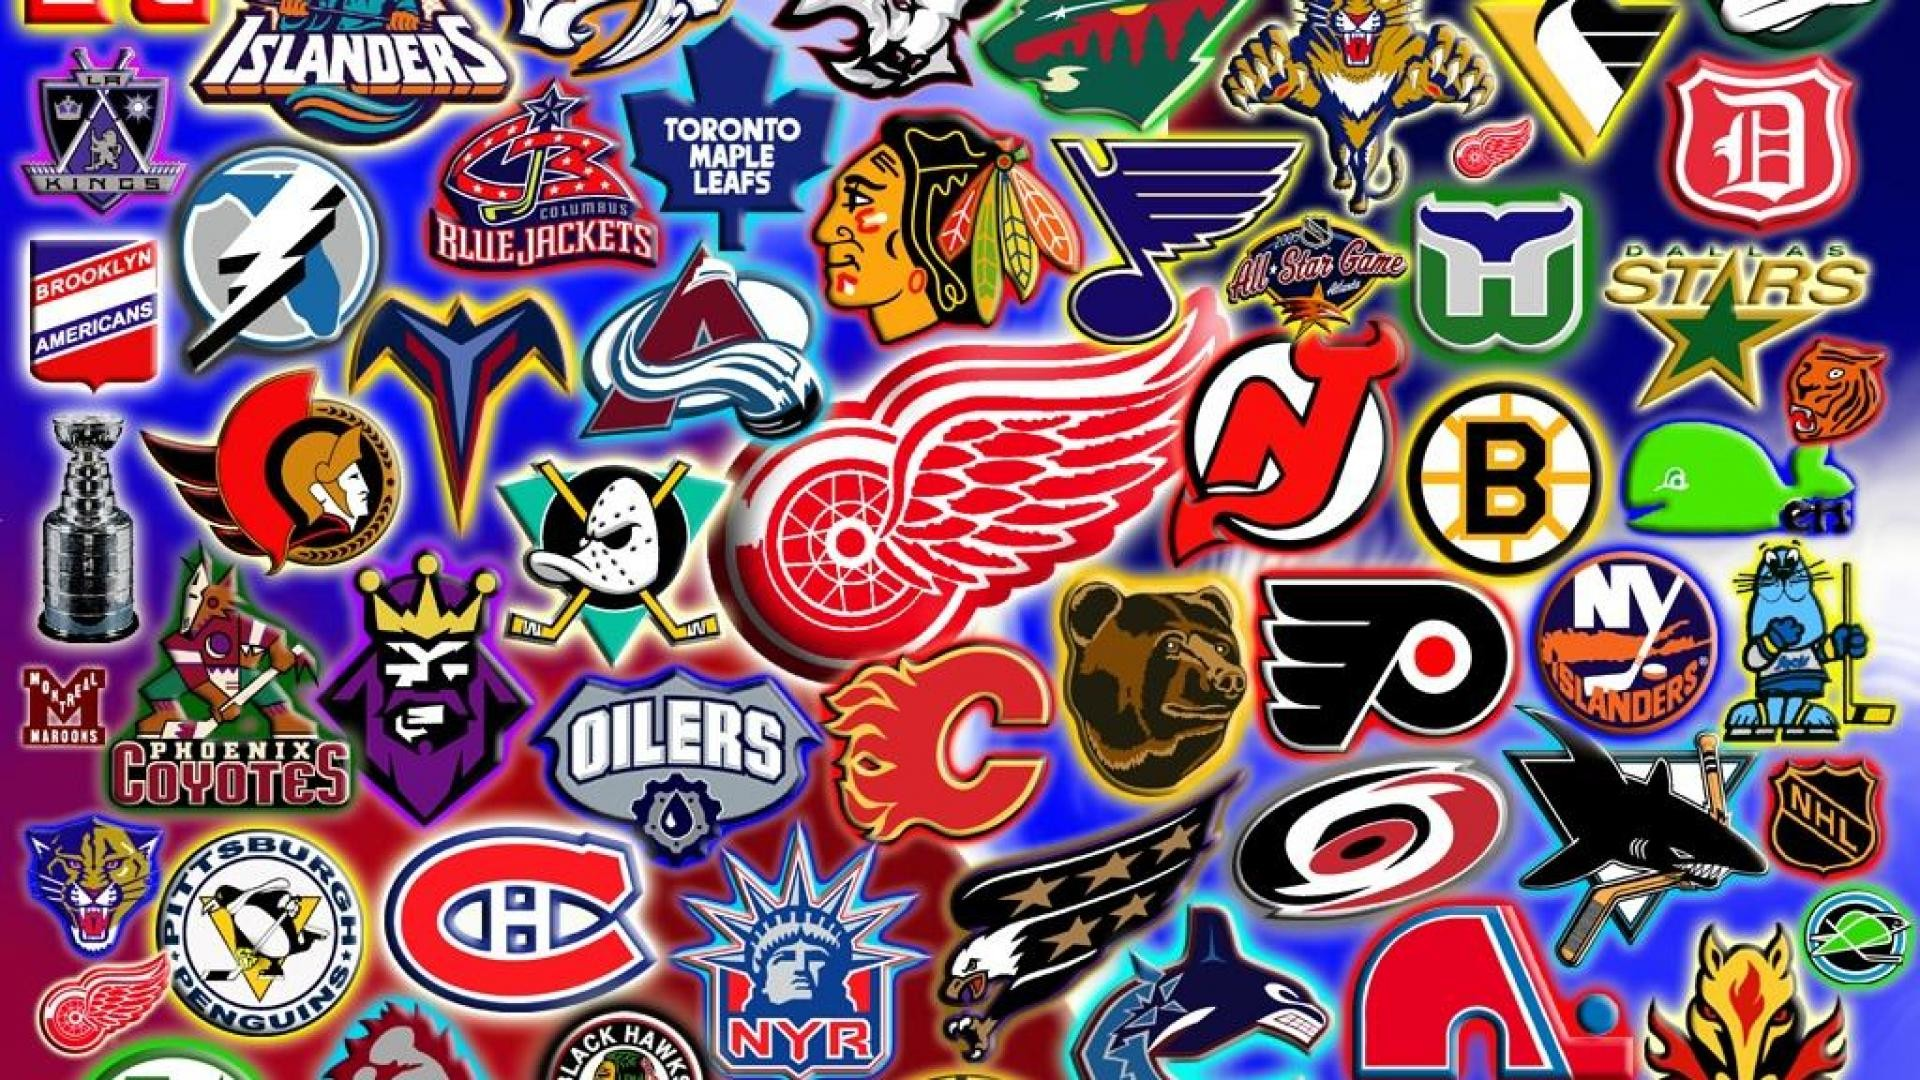 1920x1080 Nhl, Wallpaper, , Hd Baseball Wallpaper, Sport, Nhl, 1920×1080 Wallpaper HD